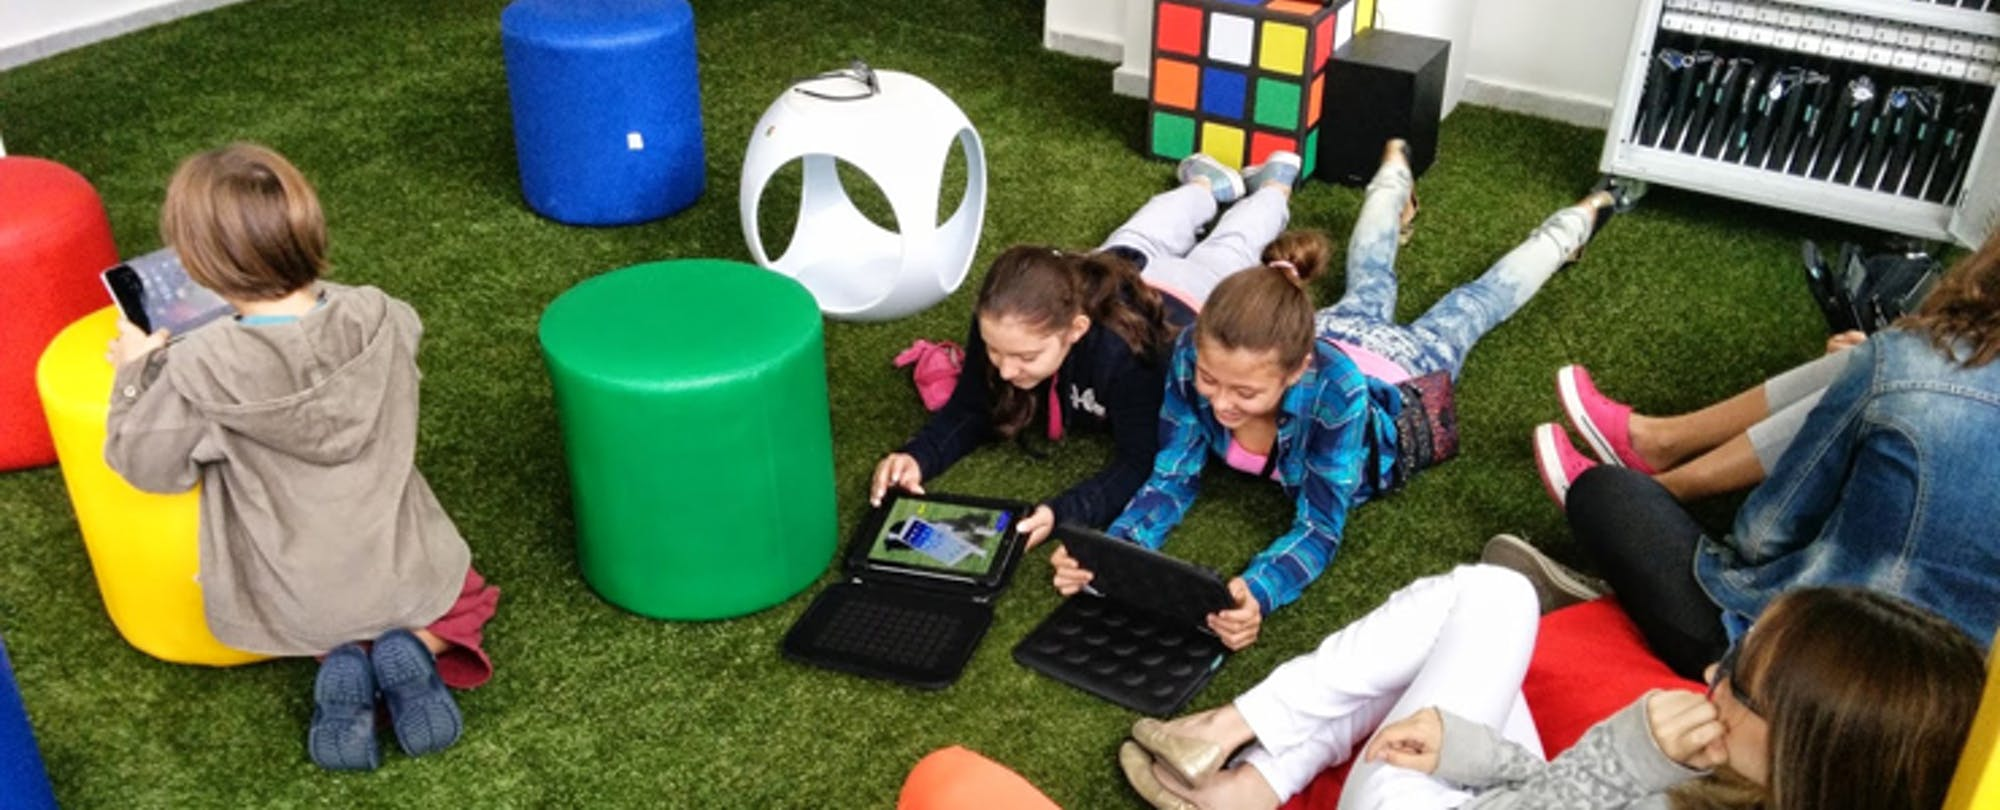 Google Launches Learning Space in Brazil